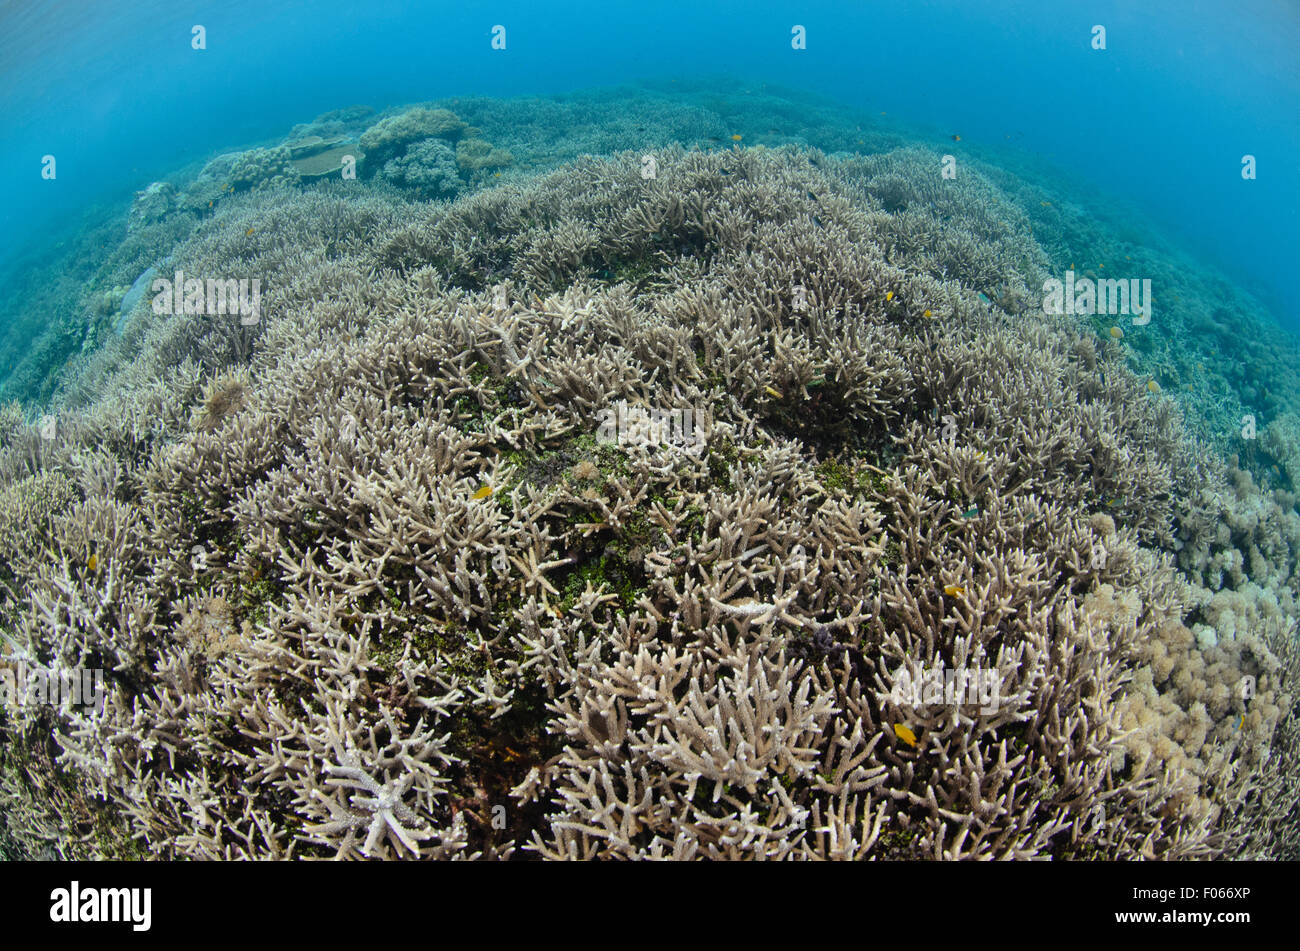 Staghorn corals in the shallows, Acropora sp., Wayag island group, Raja Ampat, Indonesia, Pacific Ocean Stock Photo